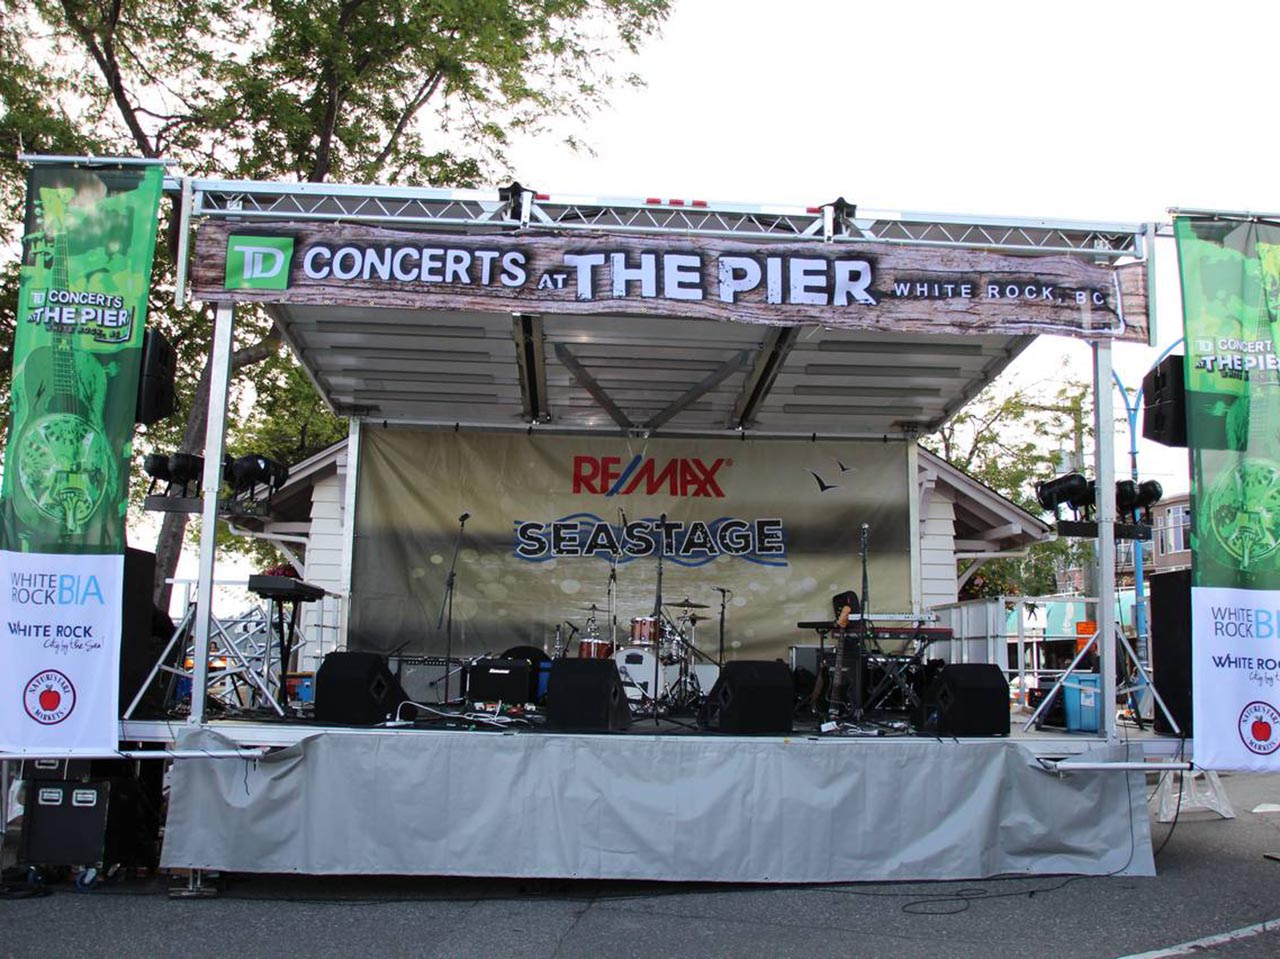 Rent a Stage - Concerts at the Pier